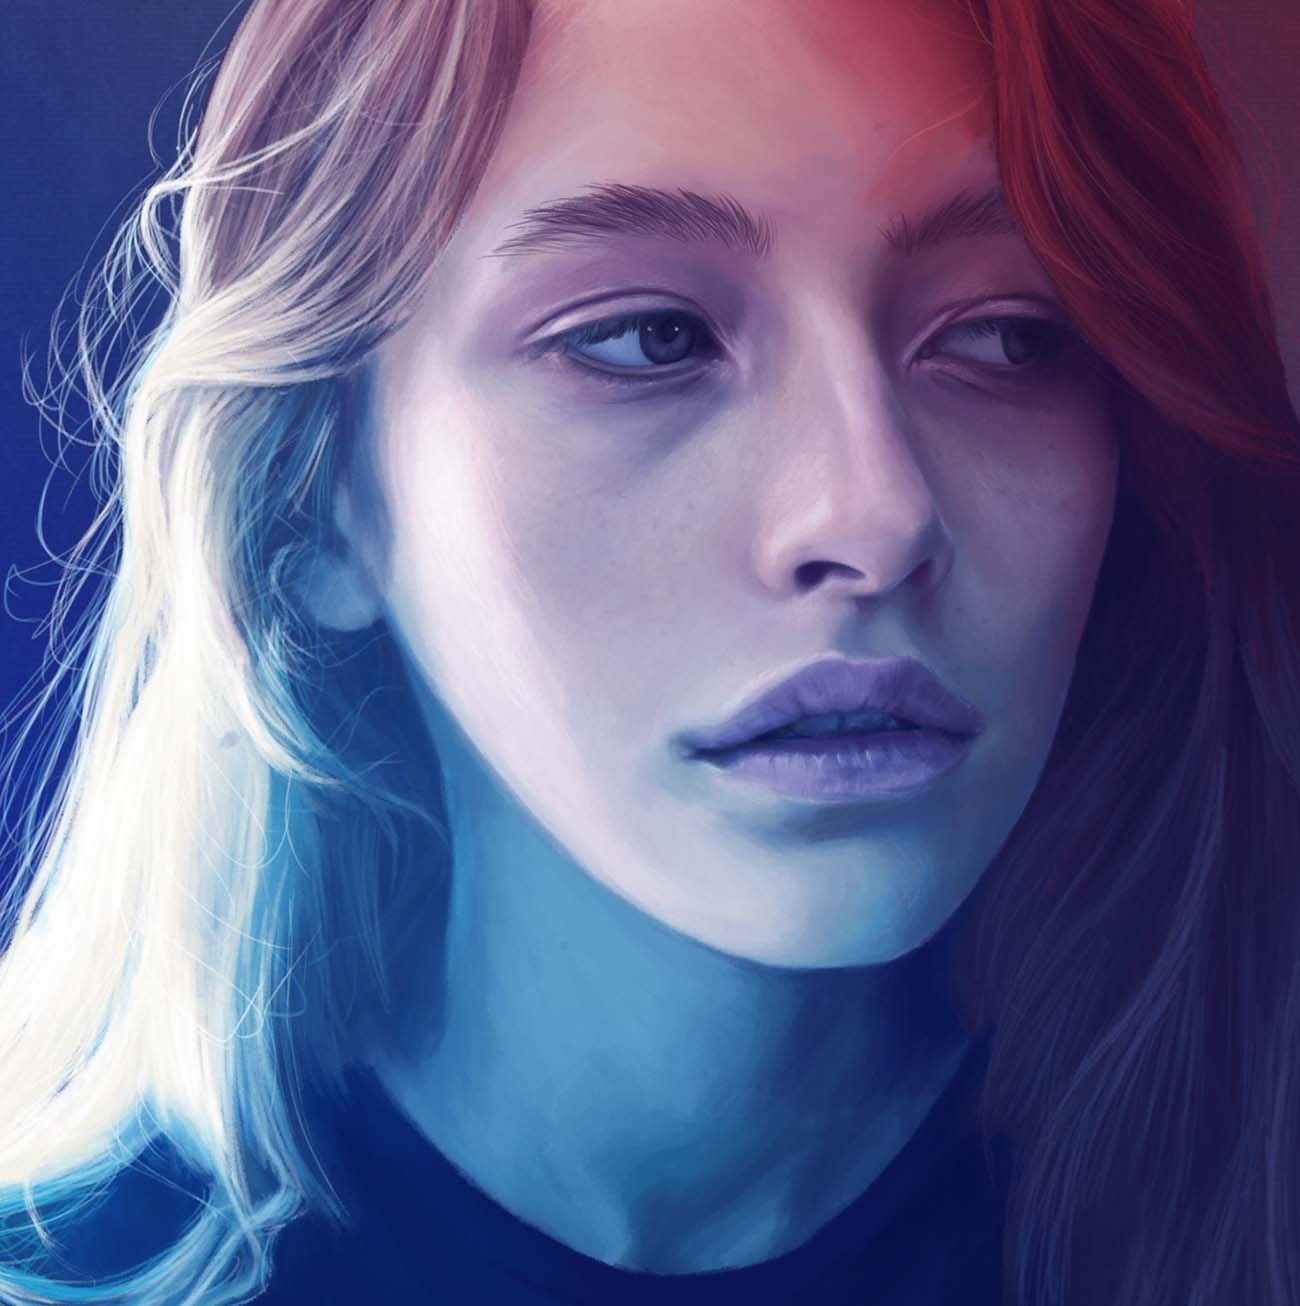 Kemi Mai | Paintable.cc Digital Painting Inspiration - Learn the Art of Digital Painting! #digitalpainting #digitalart